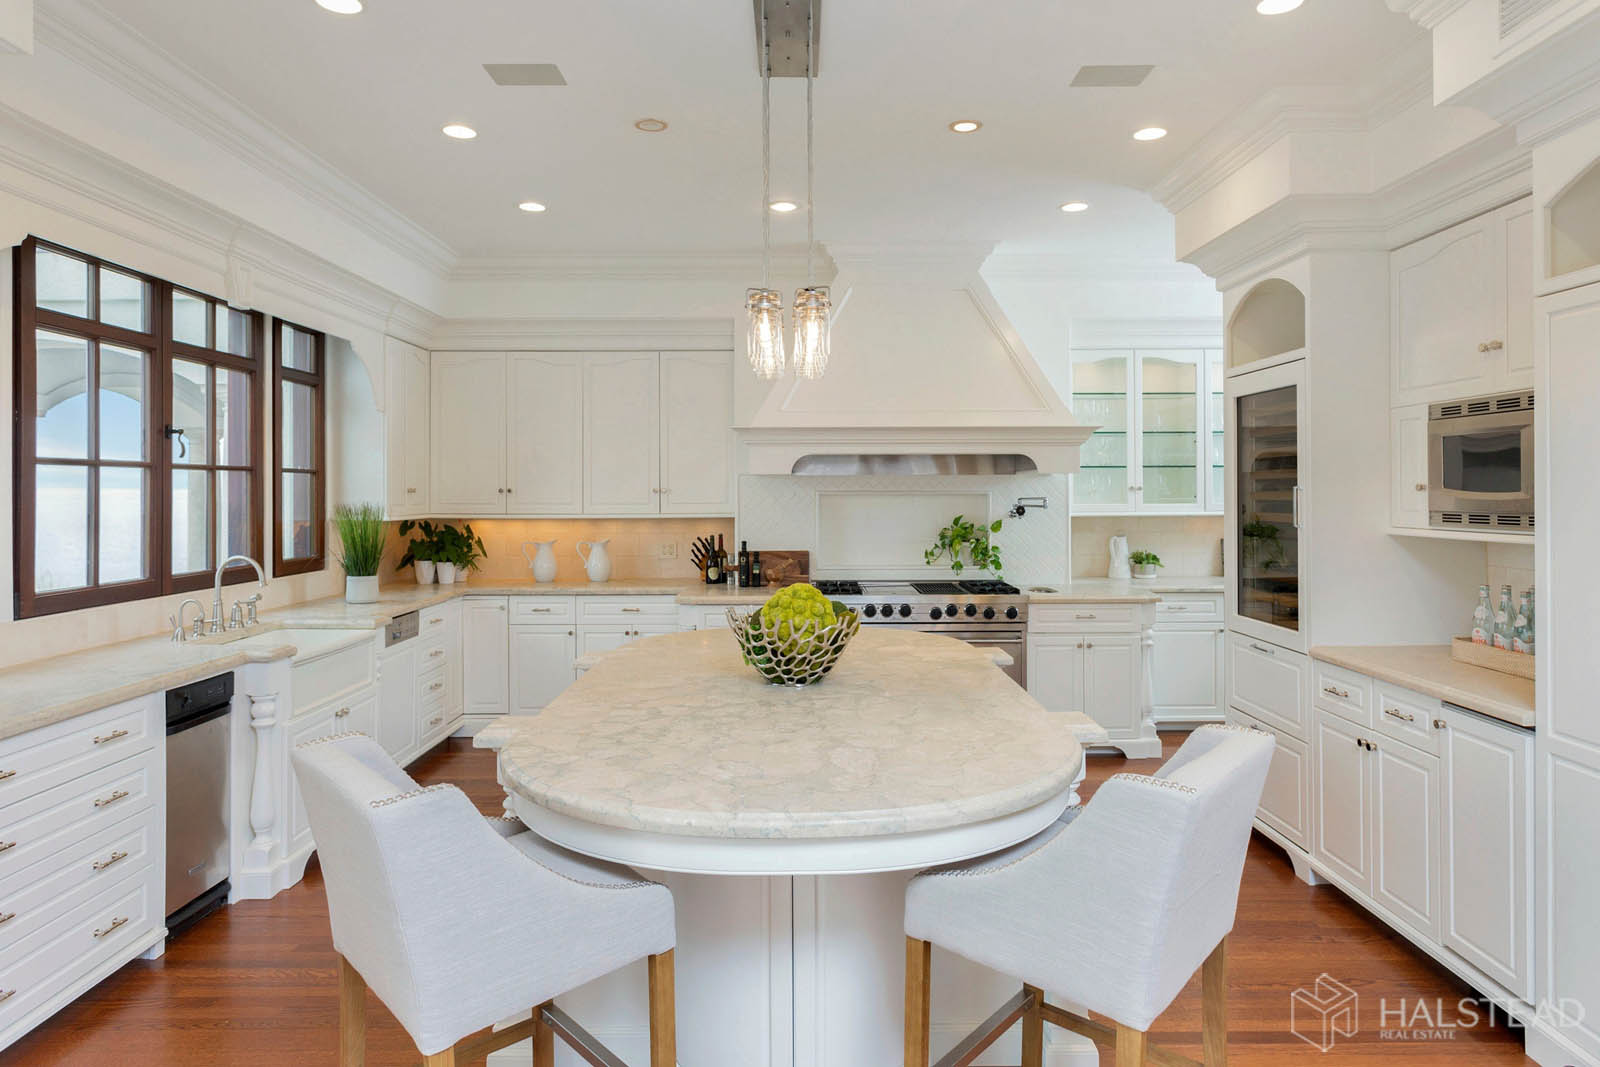 25 Butlers Island Road, Darien, Connecticut, 06820, $10,900,000, Property For Sale, Halstead Real Estate, Photo 10